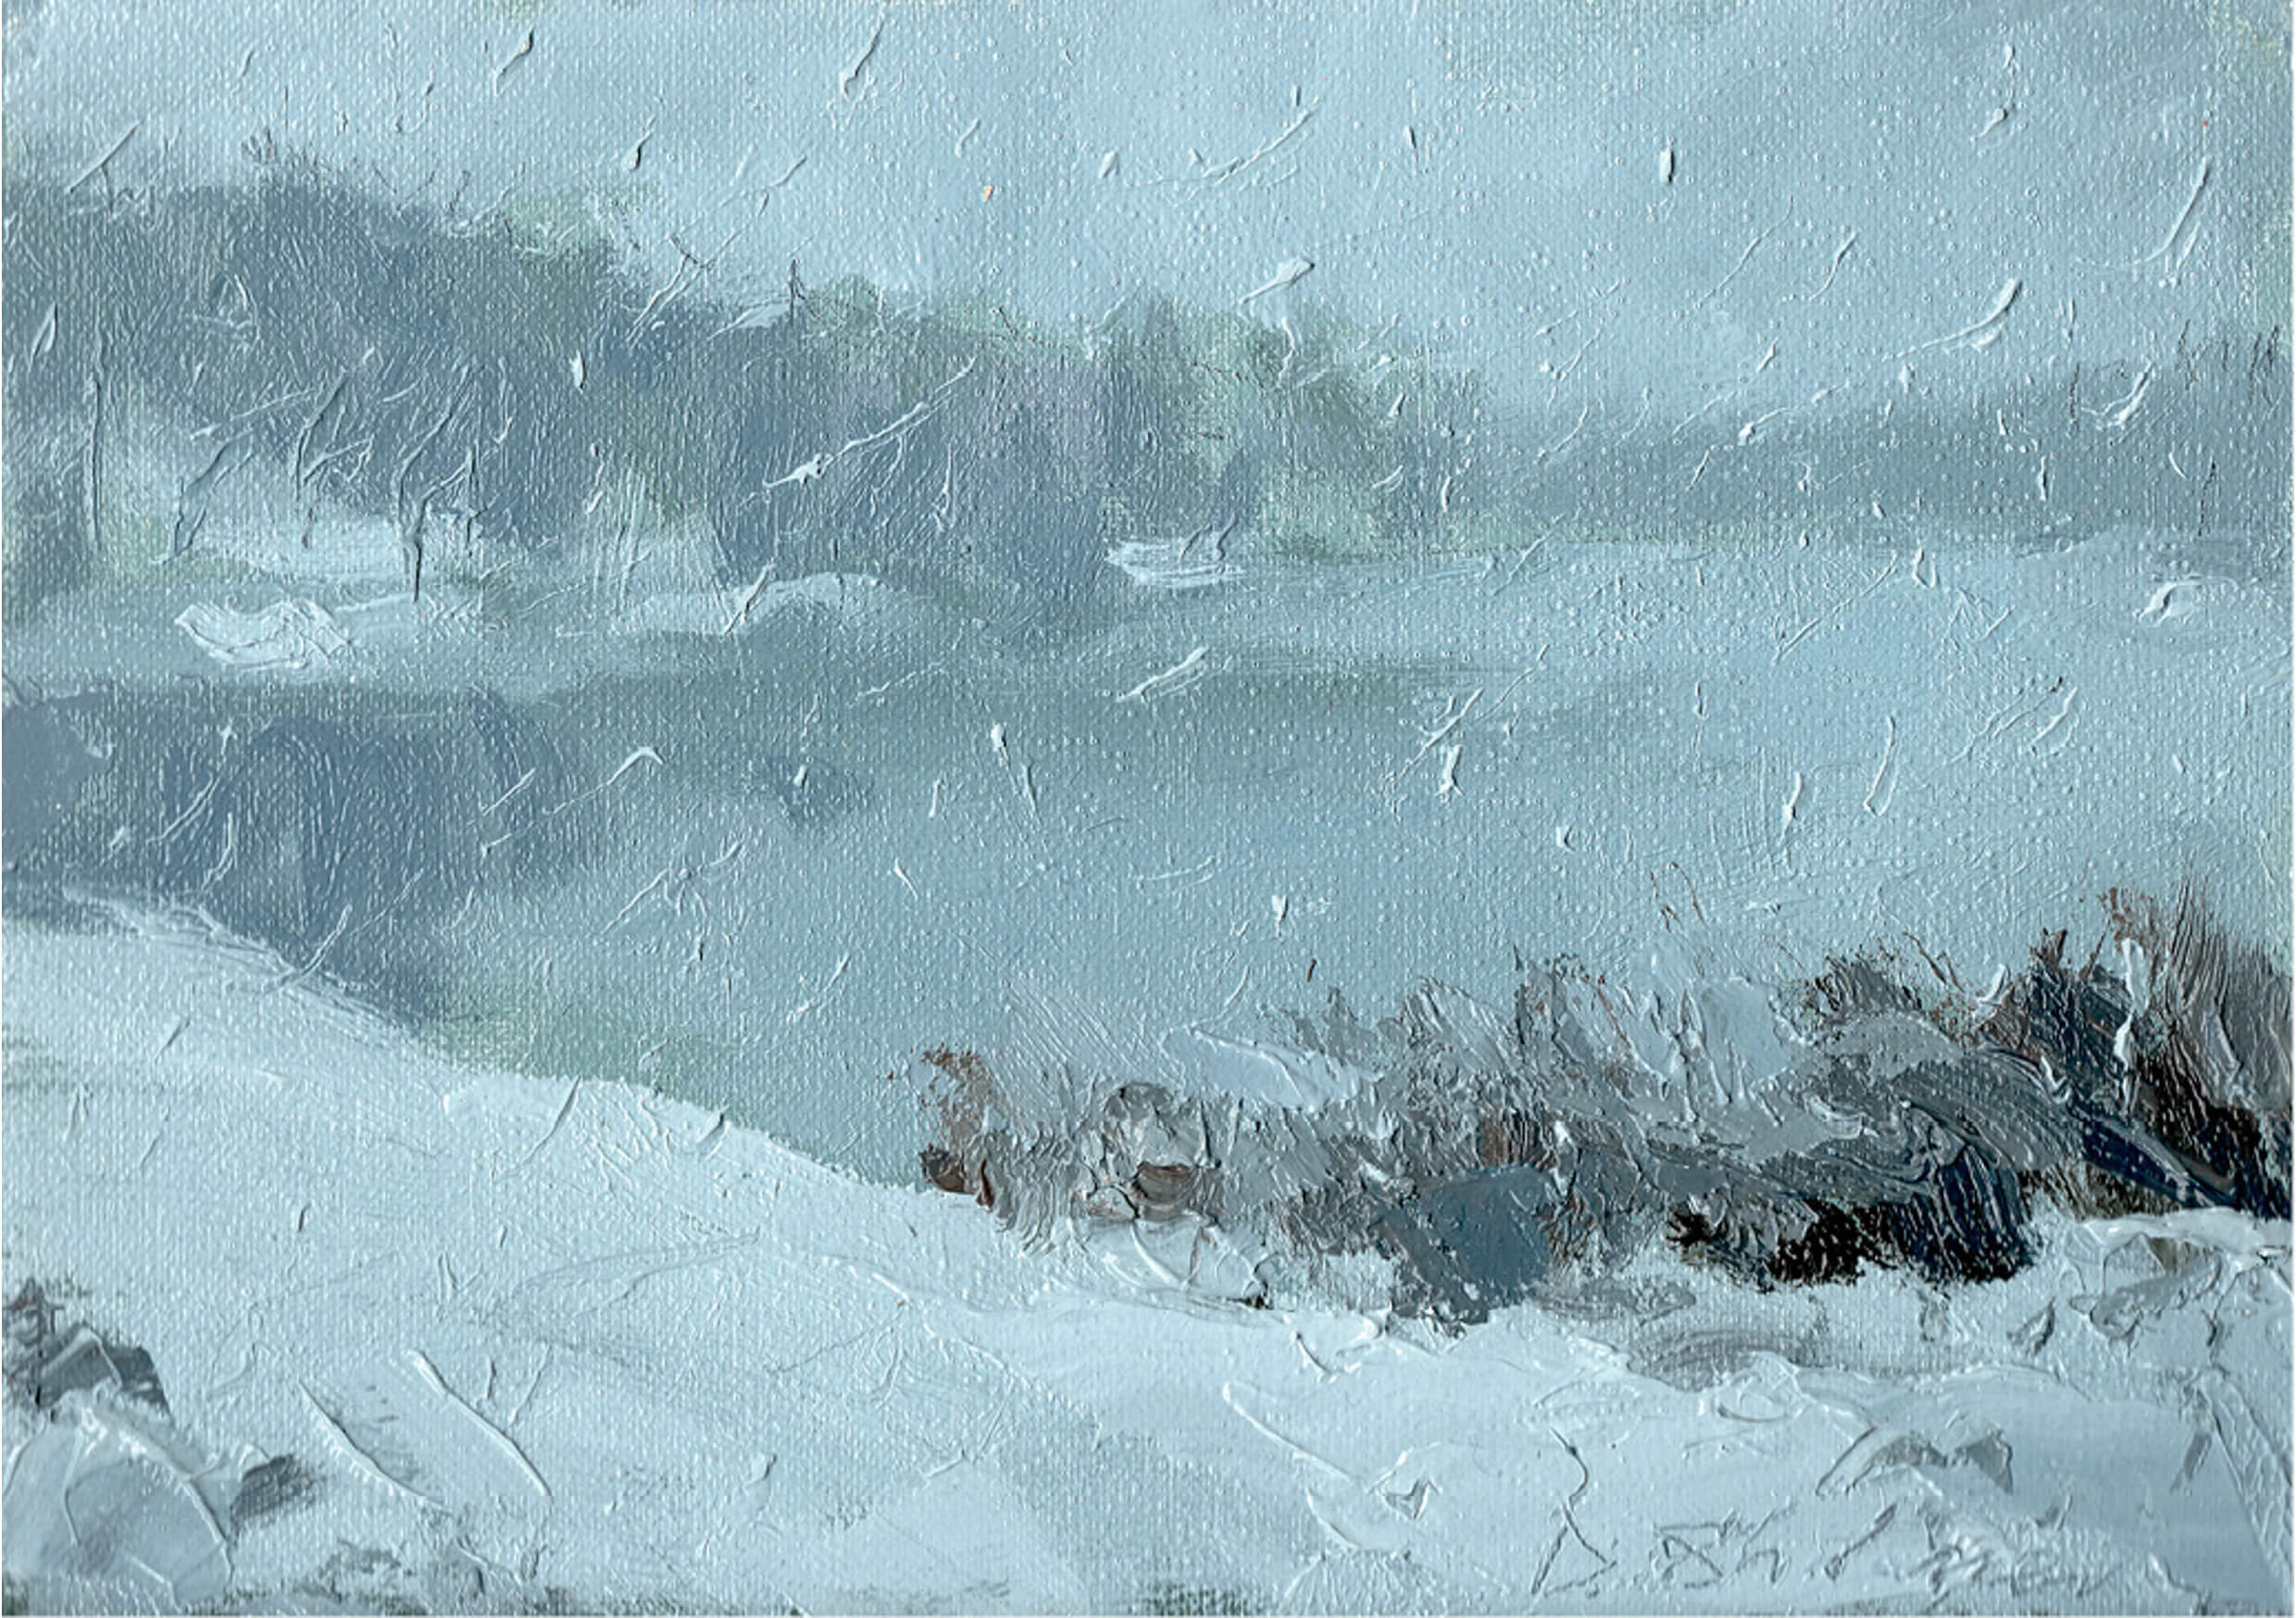 Let it snow, Oil on cardboard, 15.5 x 22 cm